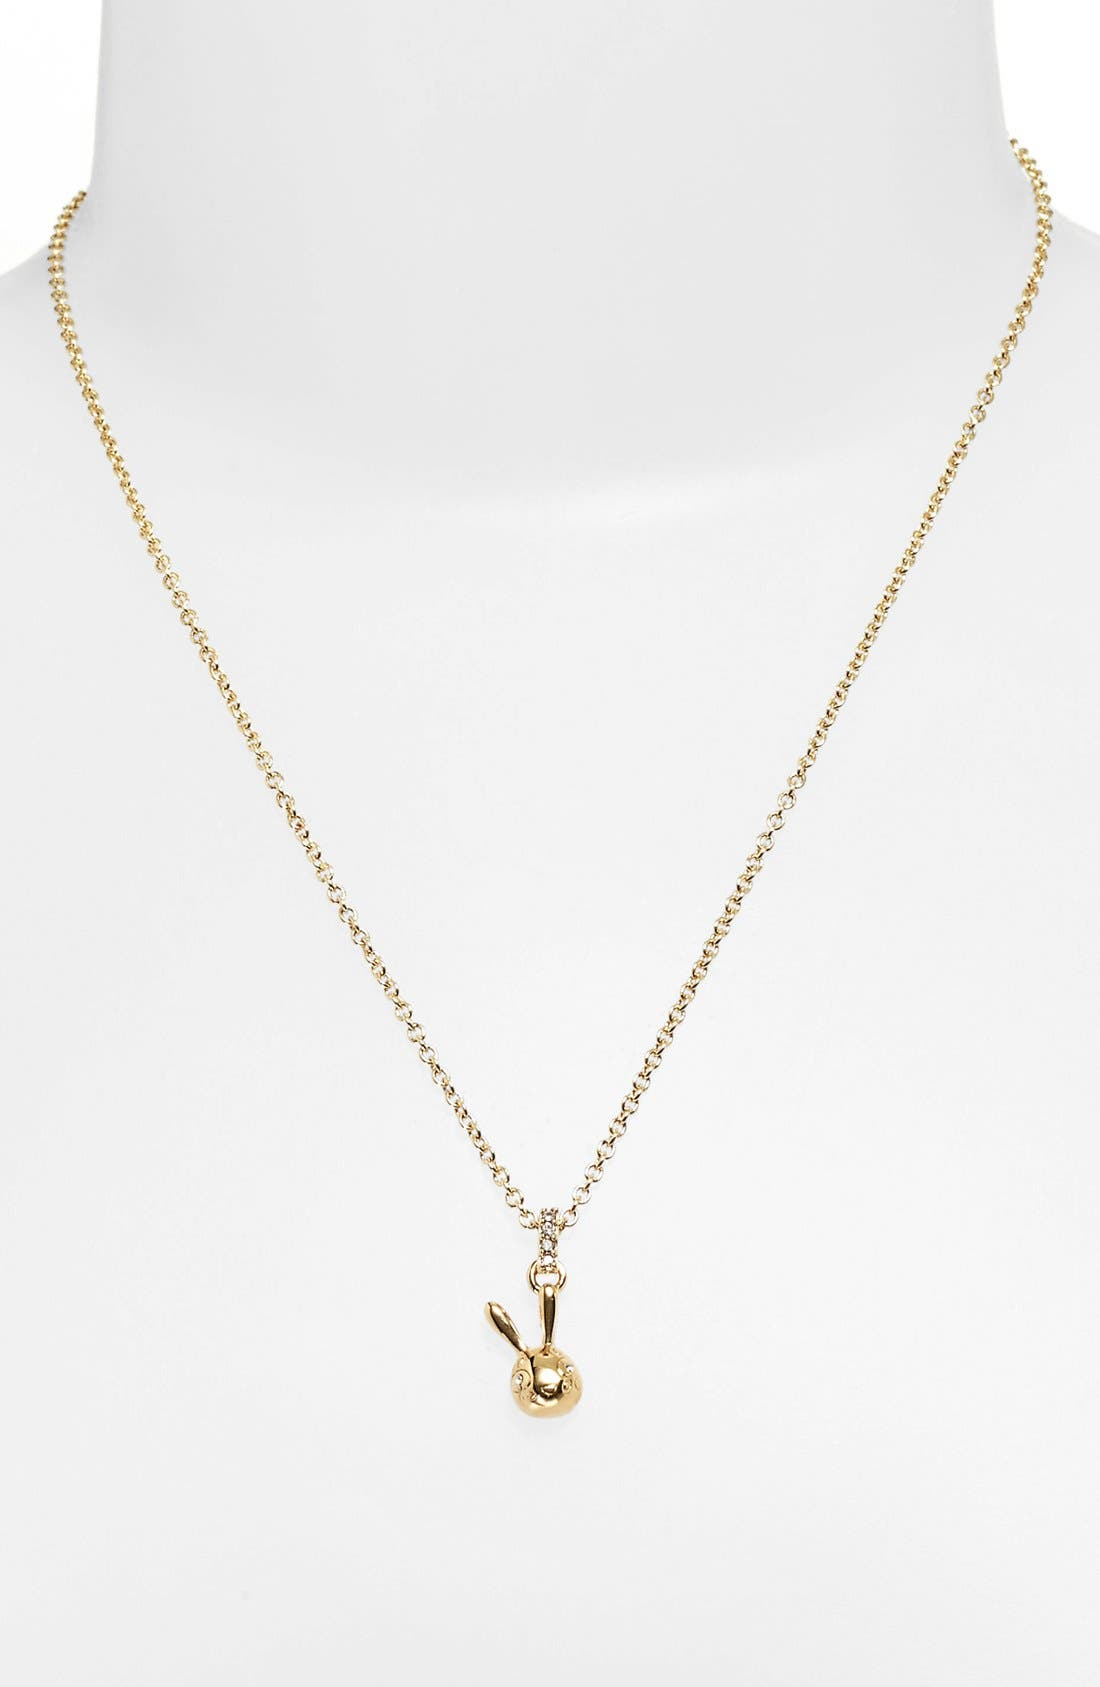 Main Image - MARC BY MARC JACOBS 'Dynamite' Bunny Pendant Necklace